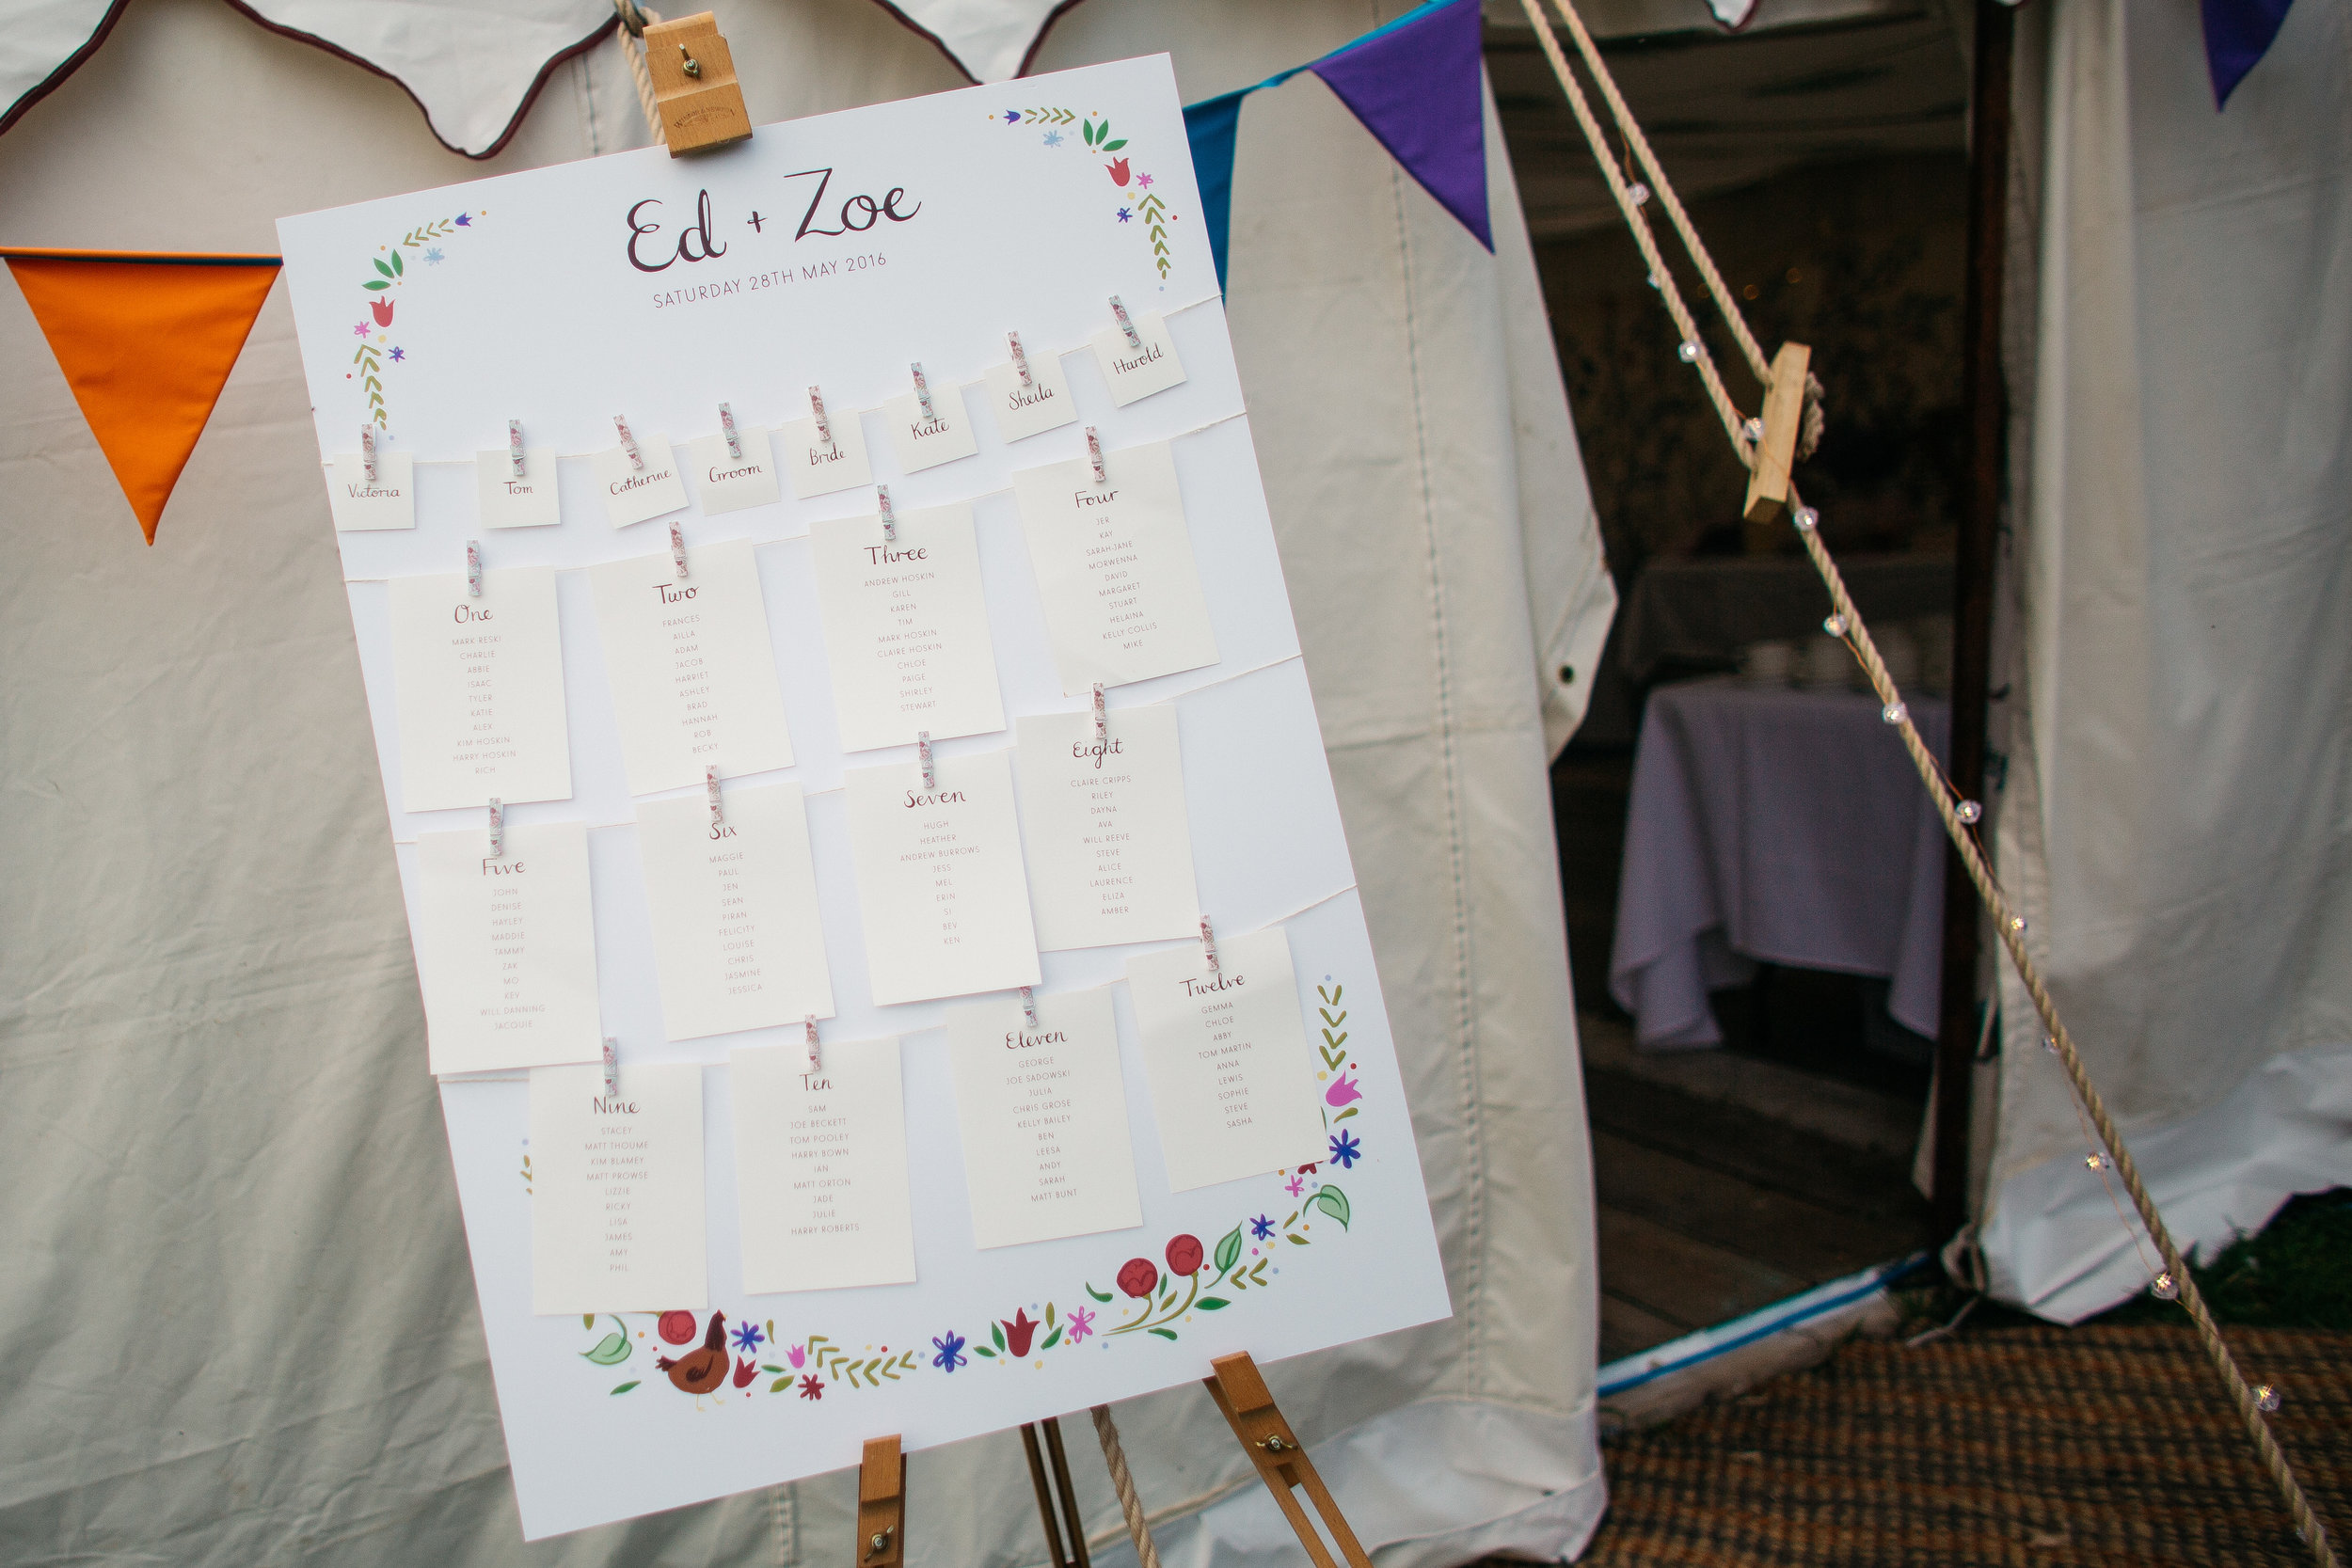 Washing line table plans are such a great idea, with each table being printed on a separate sheet you are able to add in any last minute guests without the cost of reprinting the entire plan - perfect for those late RSVPs :)